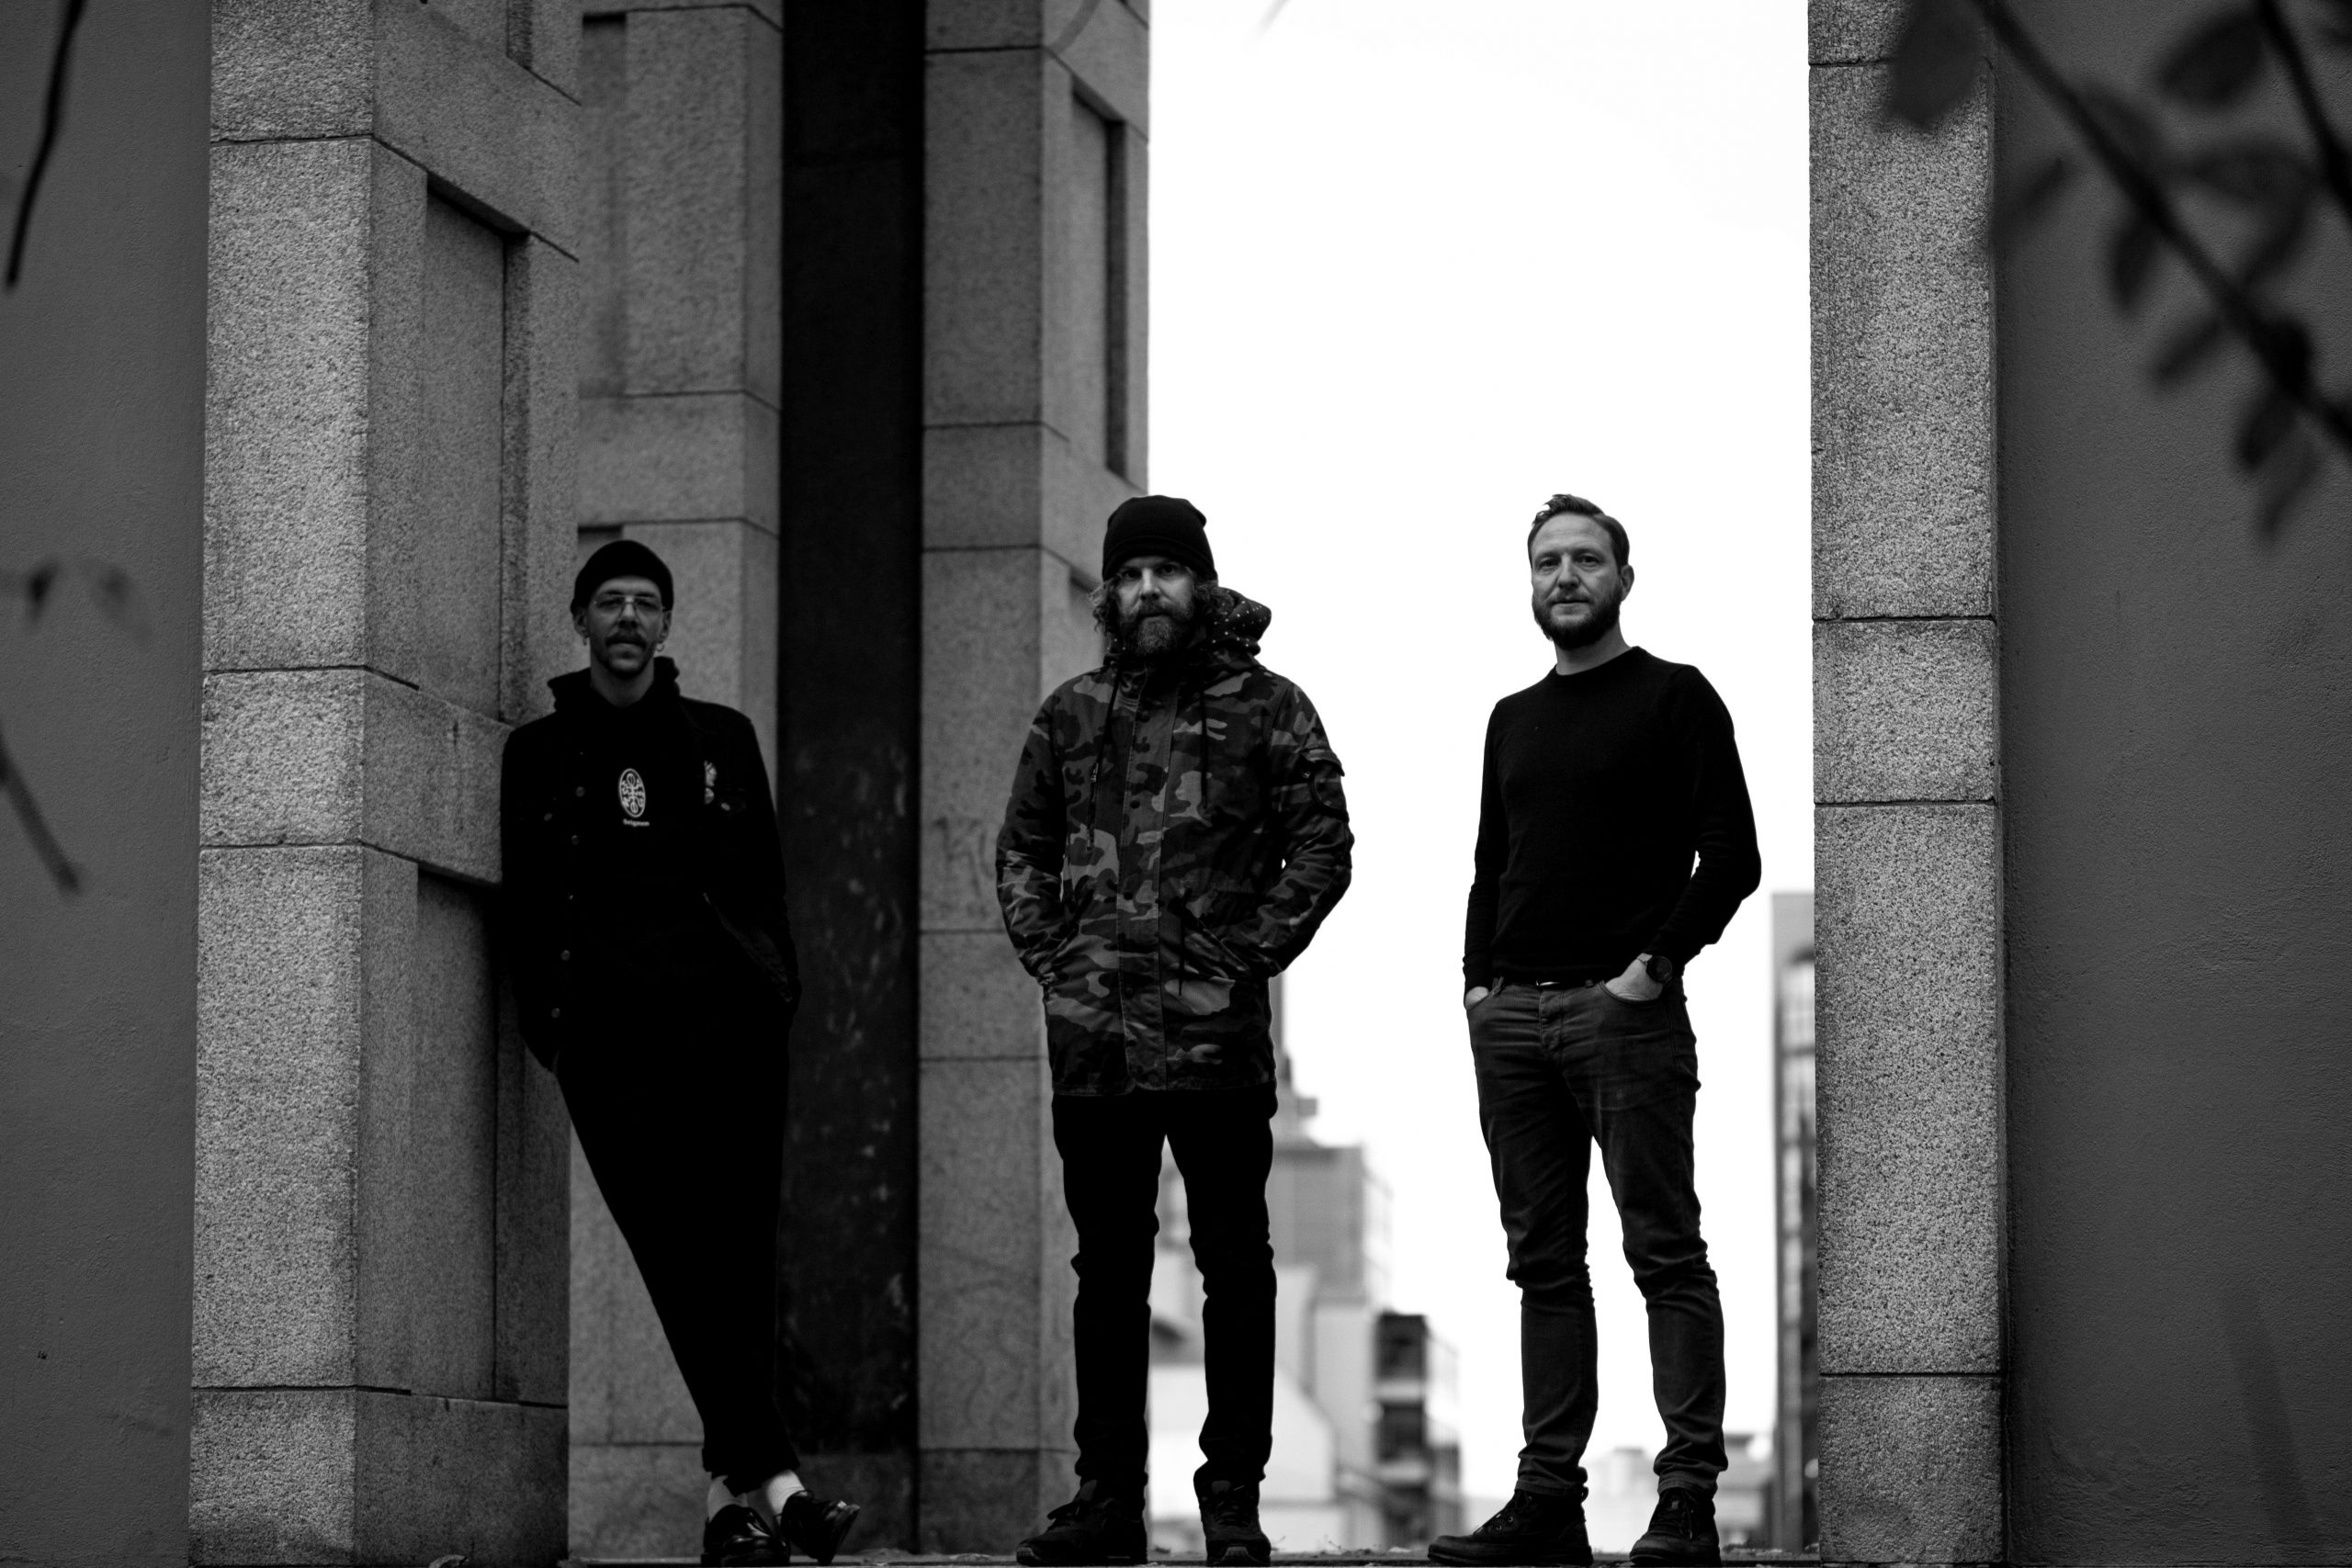 """Rongeur Channel a Cathartic Aggression With Their New Video For """"Nixonian Echoes"""""""